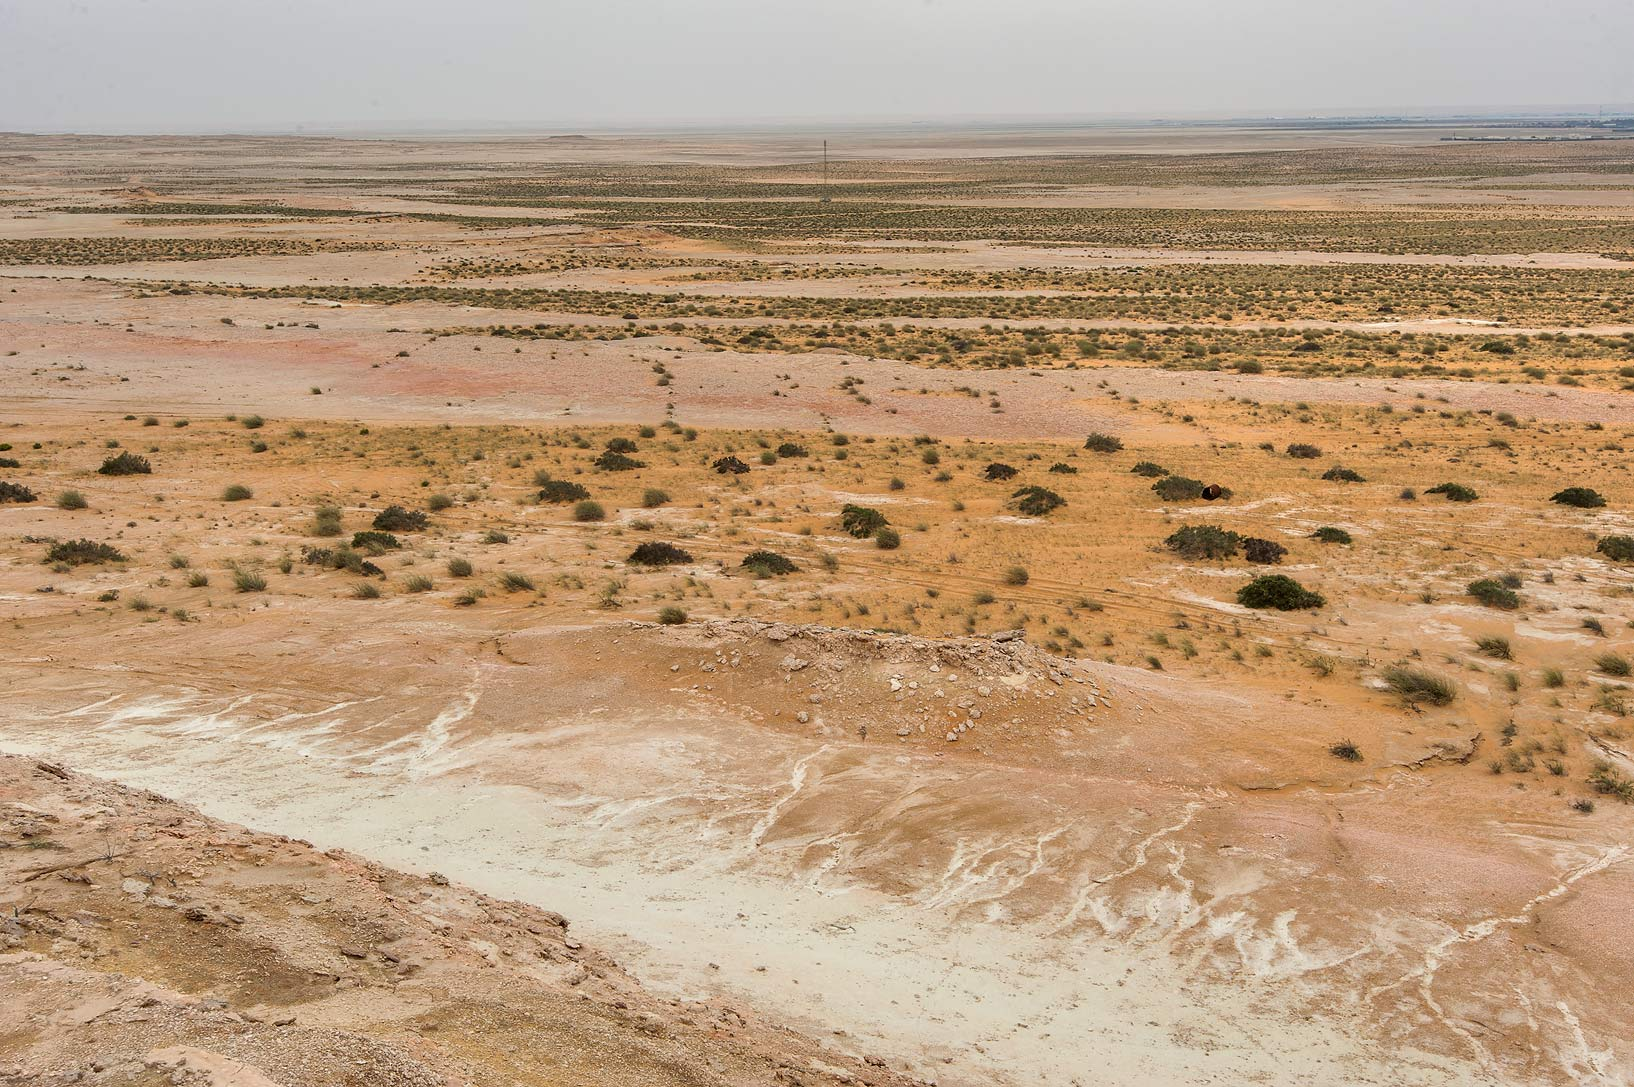 View of desert from a hill in Maszhabiya (Al...Reserve near Abu Samra. Southern Qatar